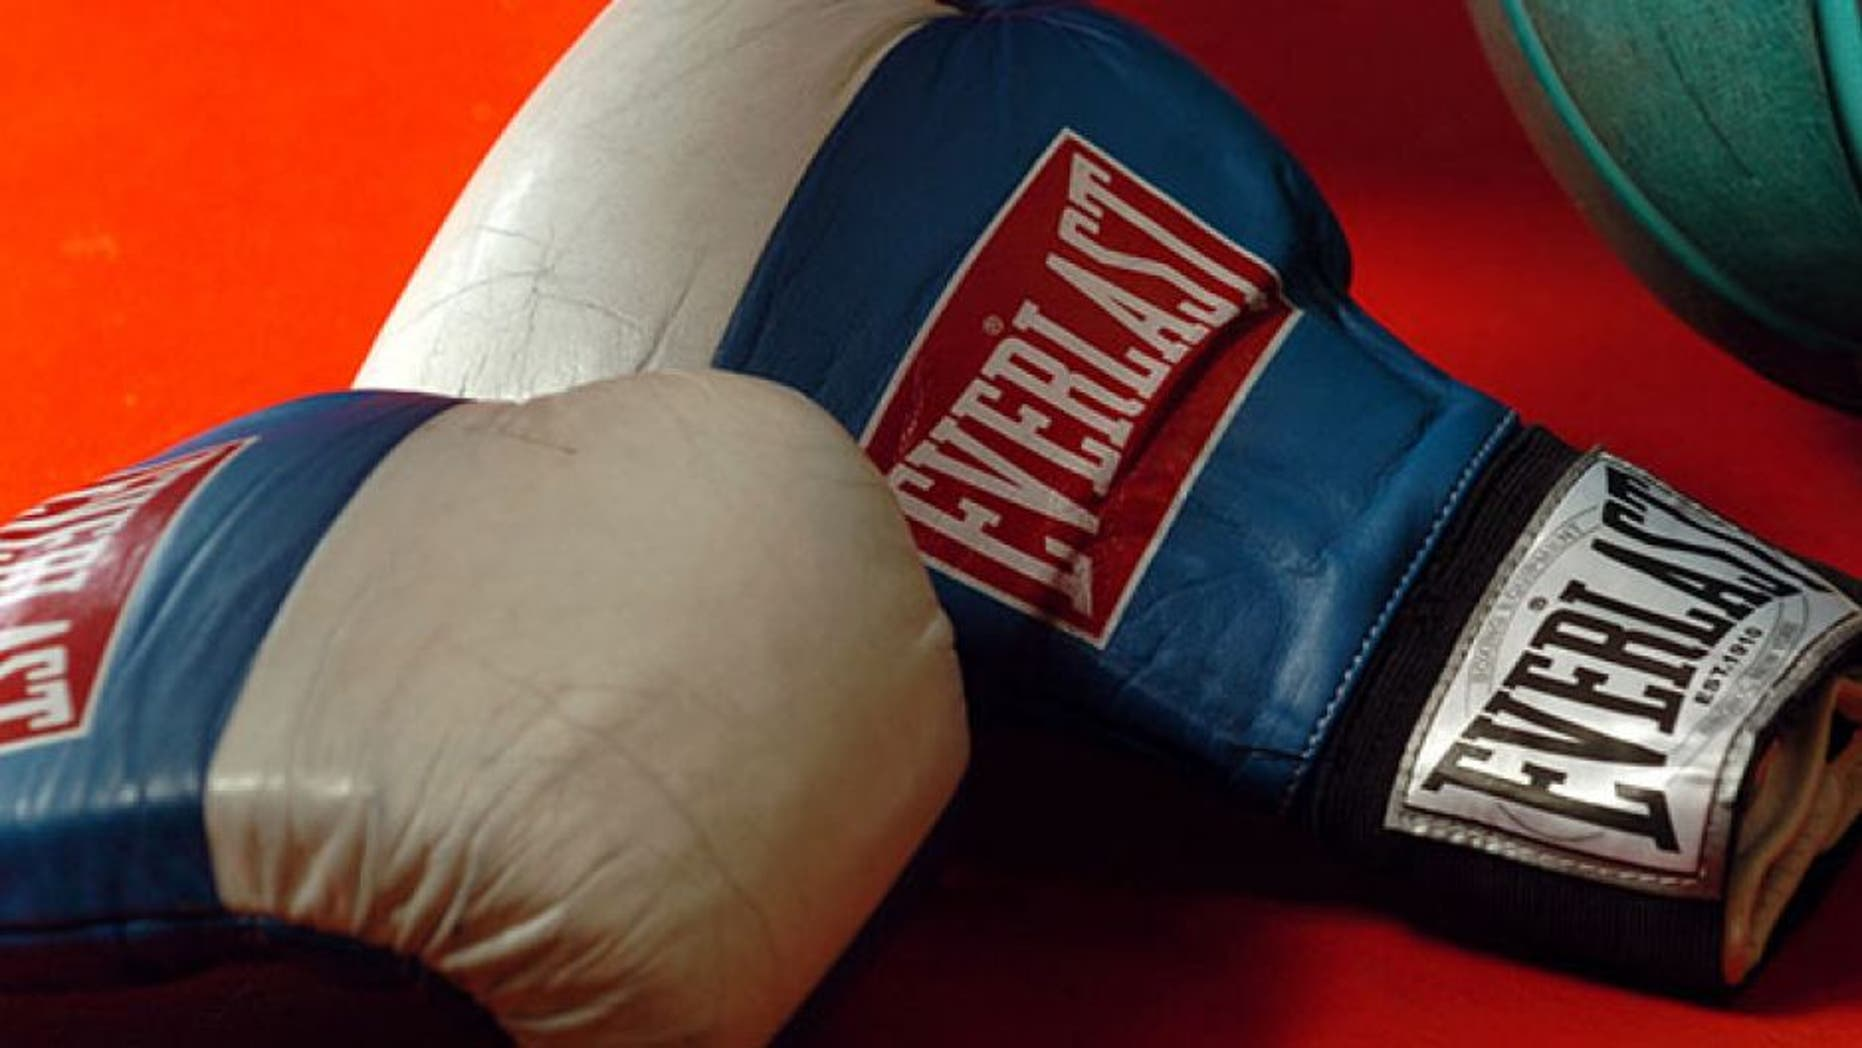 A transgender boxer's pro debut in California on Saturday night made U.S. sports history, reports say. (FotoPress/Ross Land)